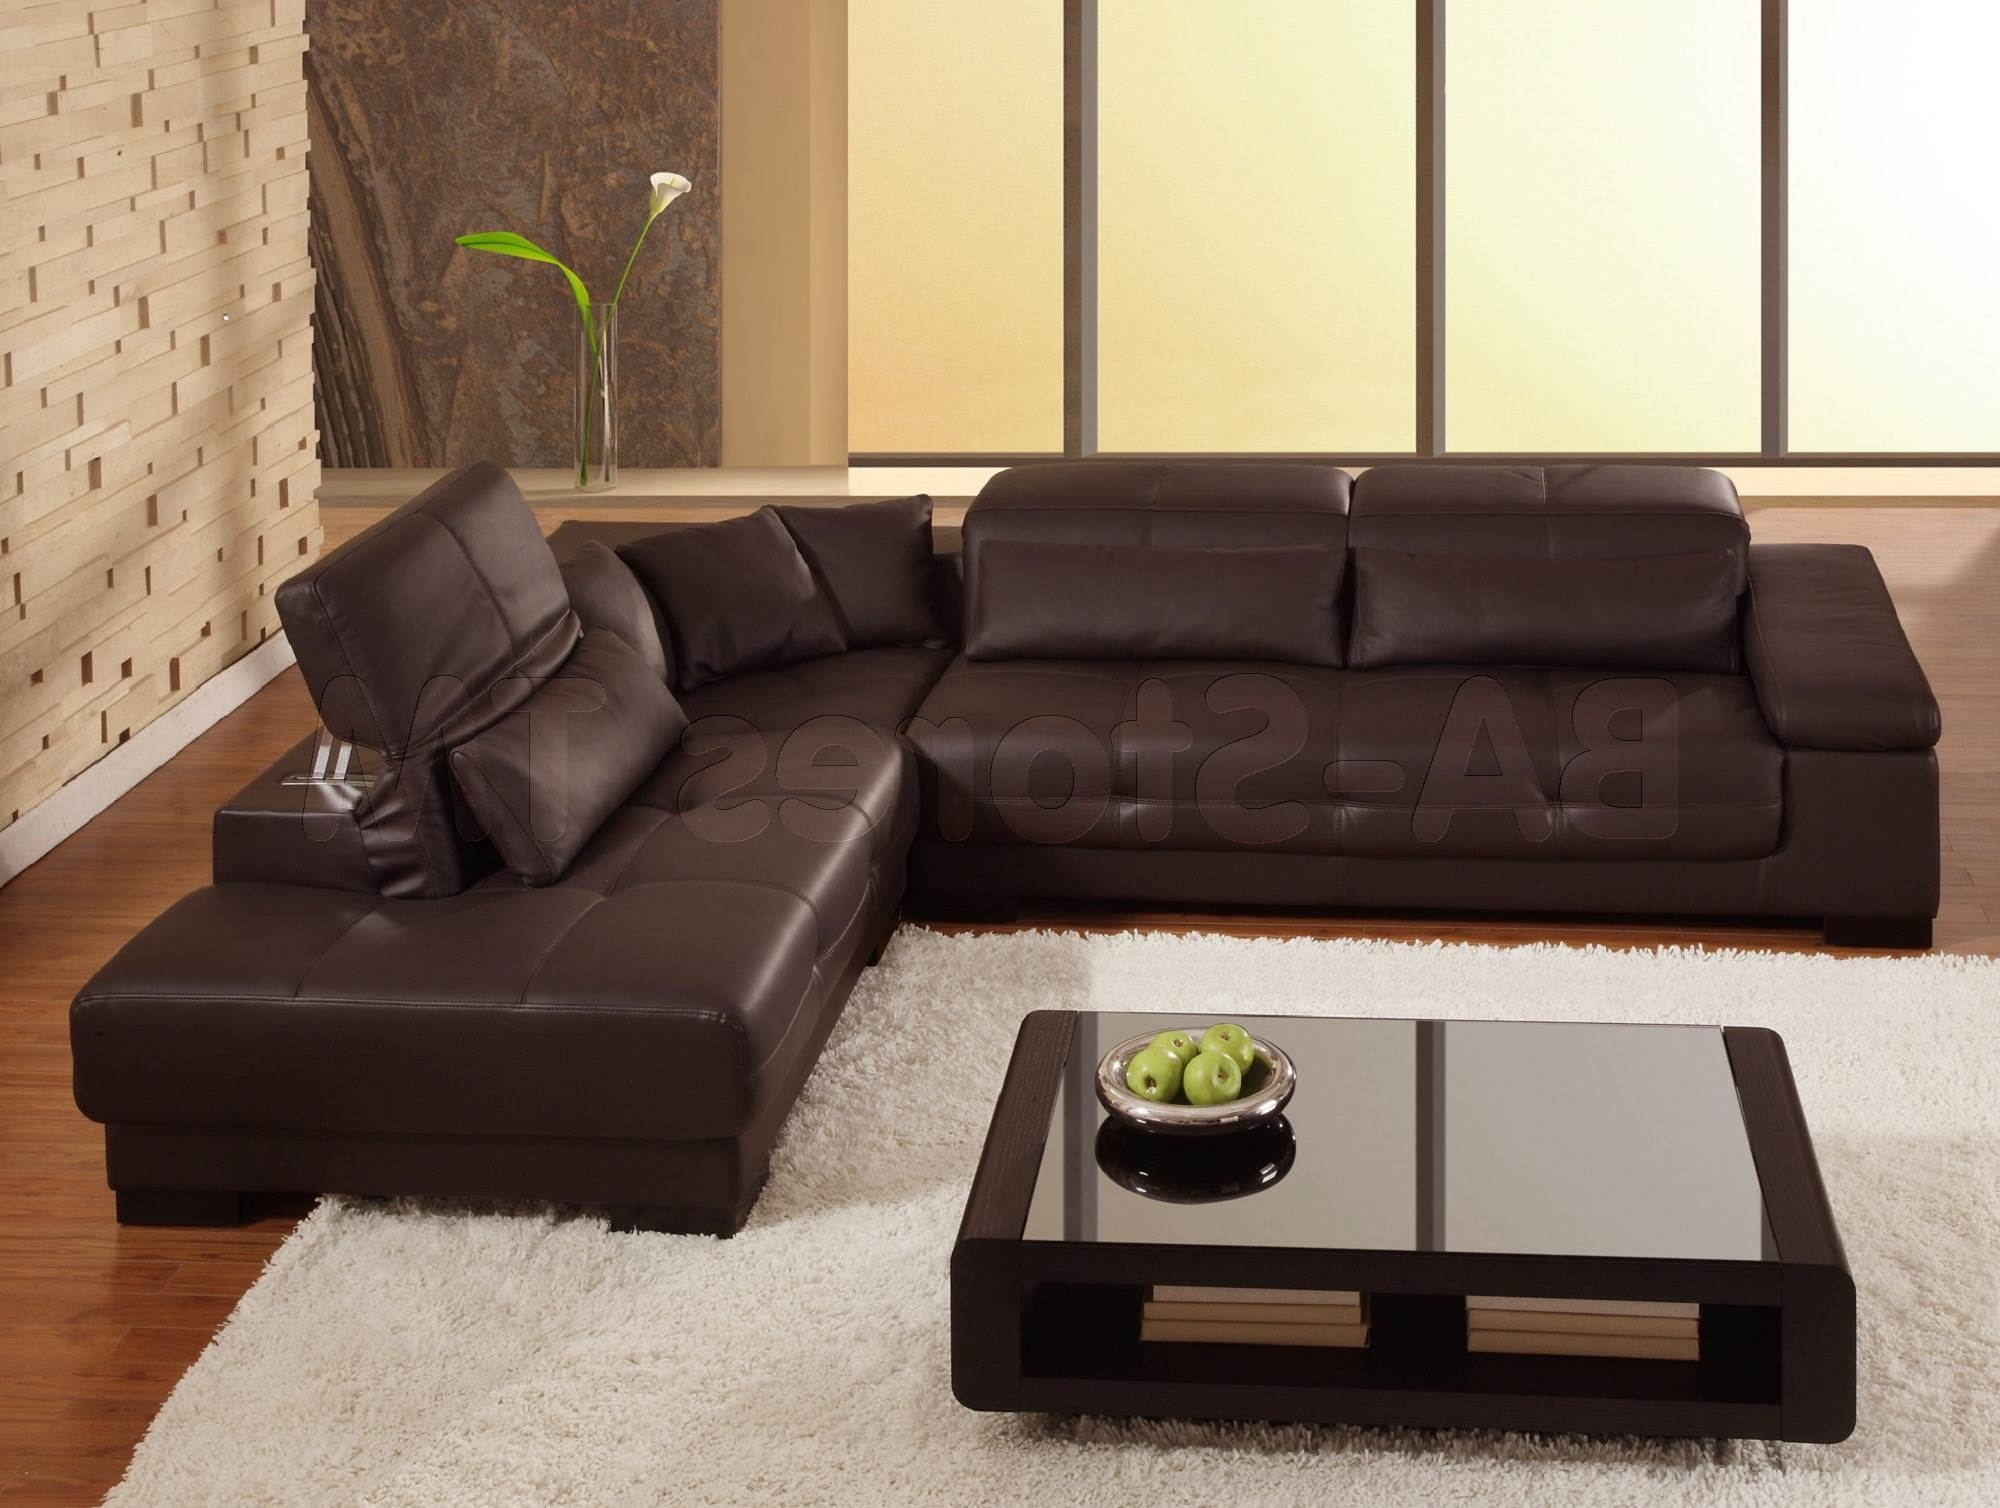 Newest Sectional Sofa Design: Top Rate Sectional Sofas Clearance Leather Inside Clearance Sectional Sofas (View 15 of 20)